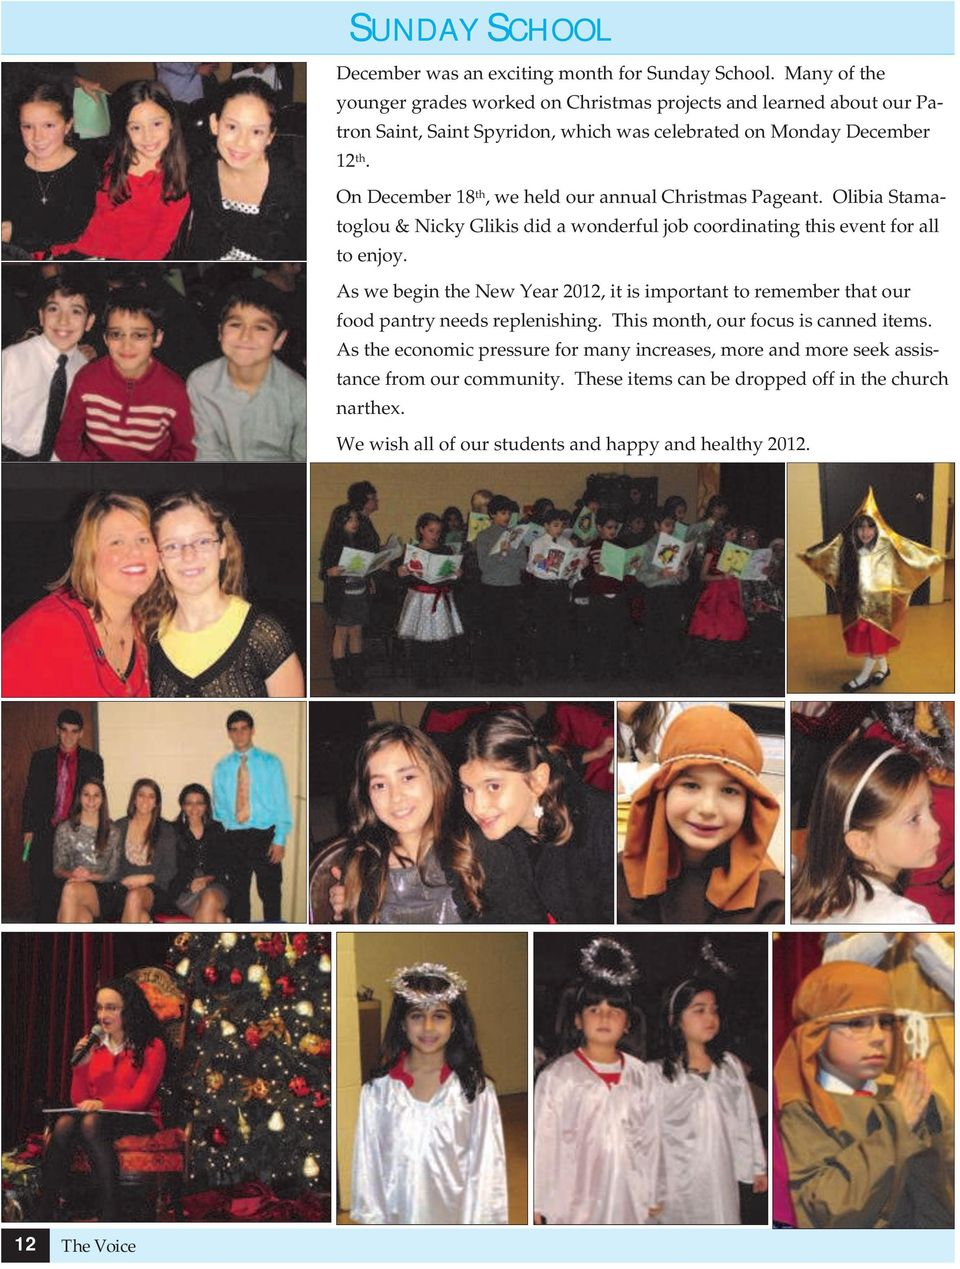 On December 18 th, we held our annual Christmas Pageant. Olibia Stamatoglou & Nicky Glikis did a wonderful job coordinating this event for all to enjoy.